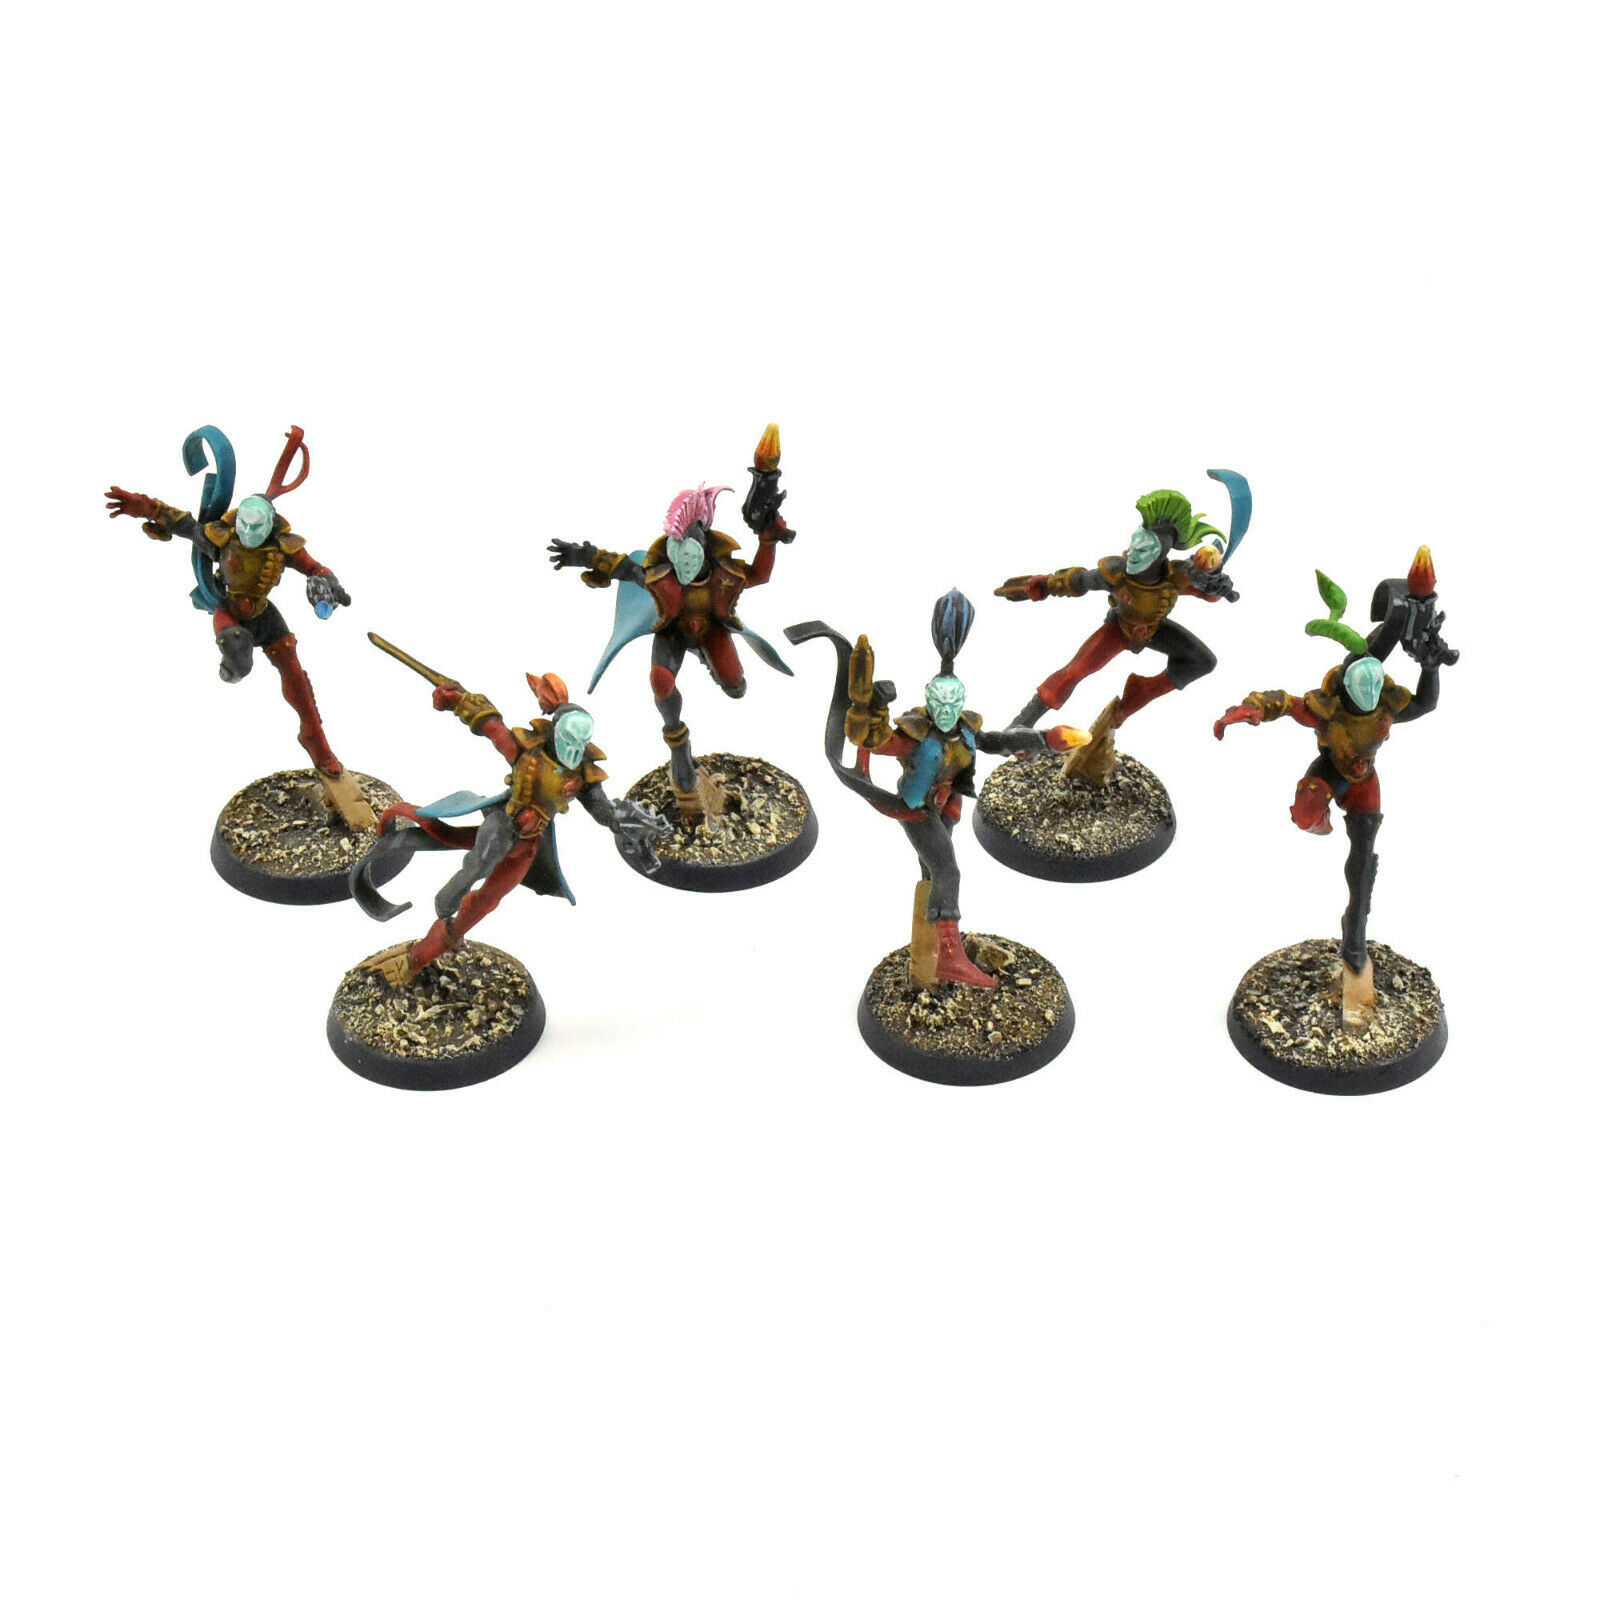 HARLEQUINS 6 harlequin troupe  1 WELL PAINTED  Warhammer 40K harlequin  la qualité d'abord les consommateurs d'abord